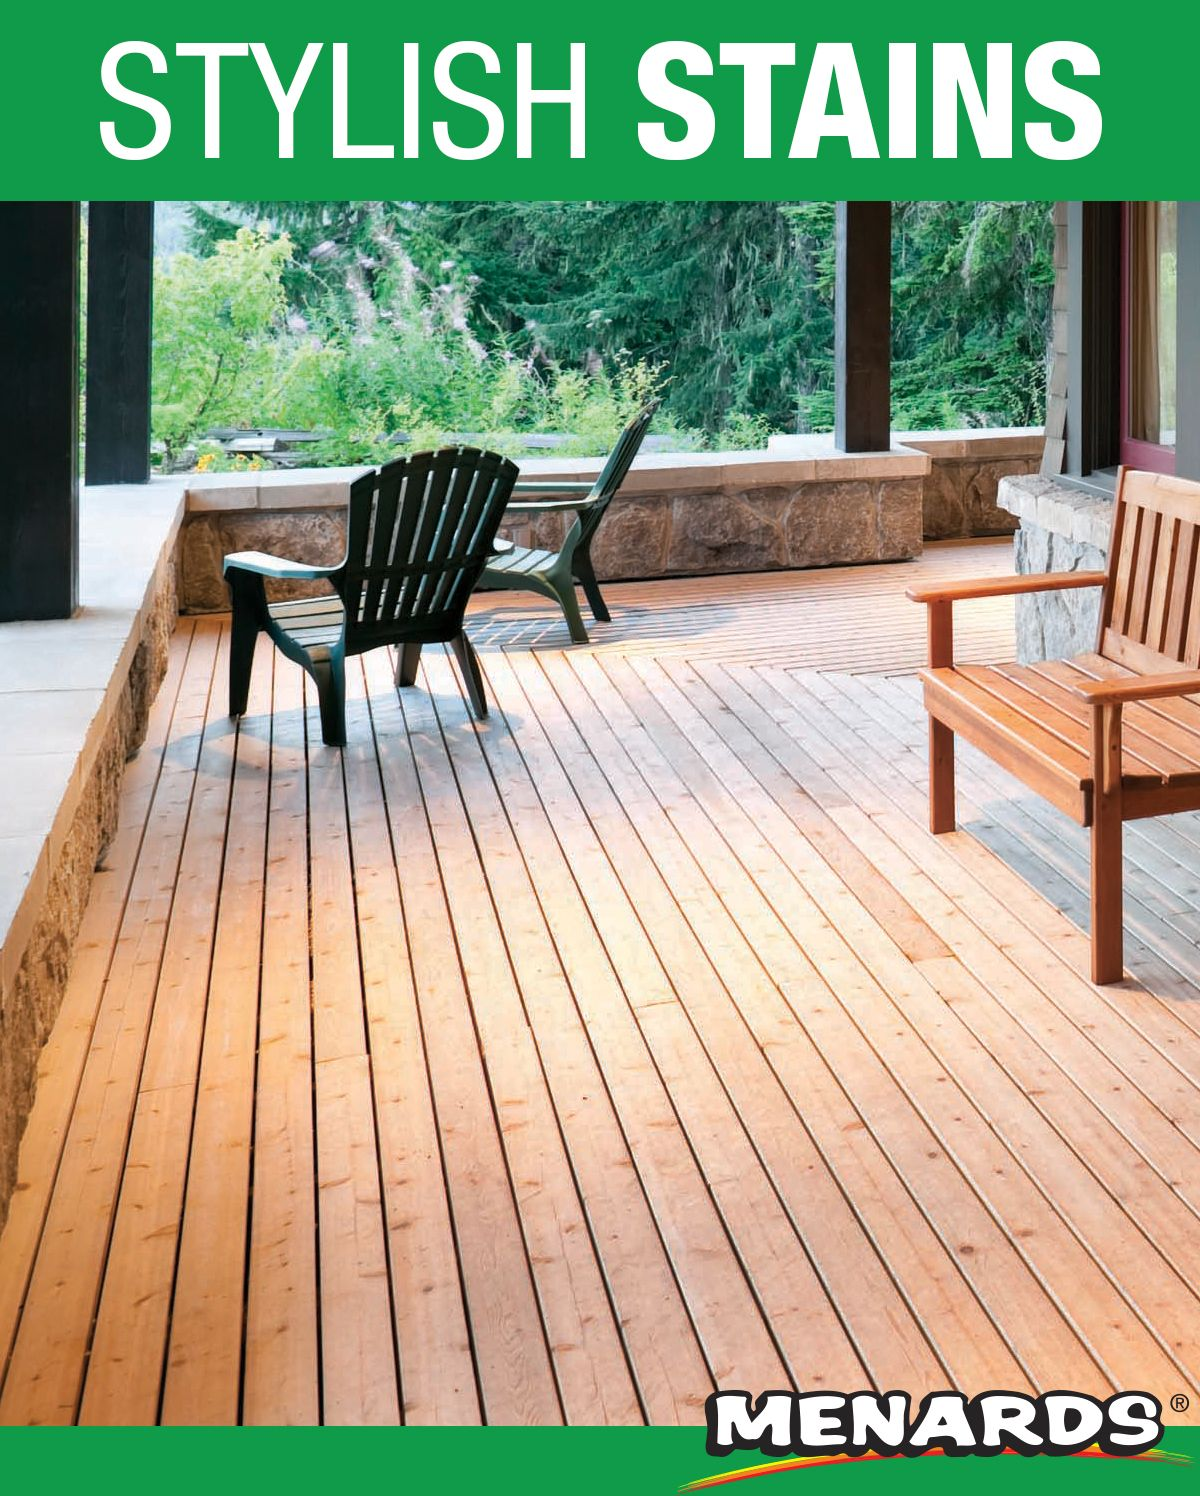 Protect And Beautify Your Deck With Cabot With Their Wide Selection Cabot Offers A Stain For Every Style Outdoor Decor Renovations Home Renovation